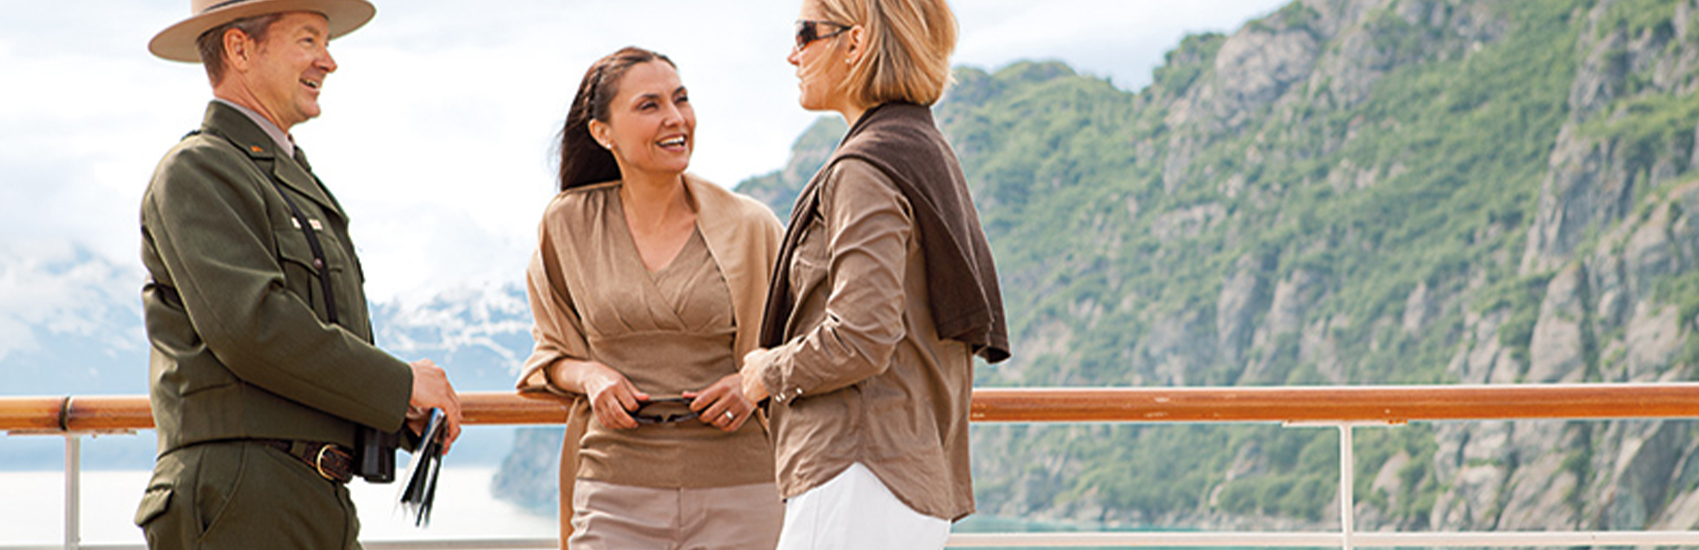 Pack These Values With Holland America Line 2